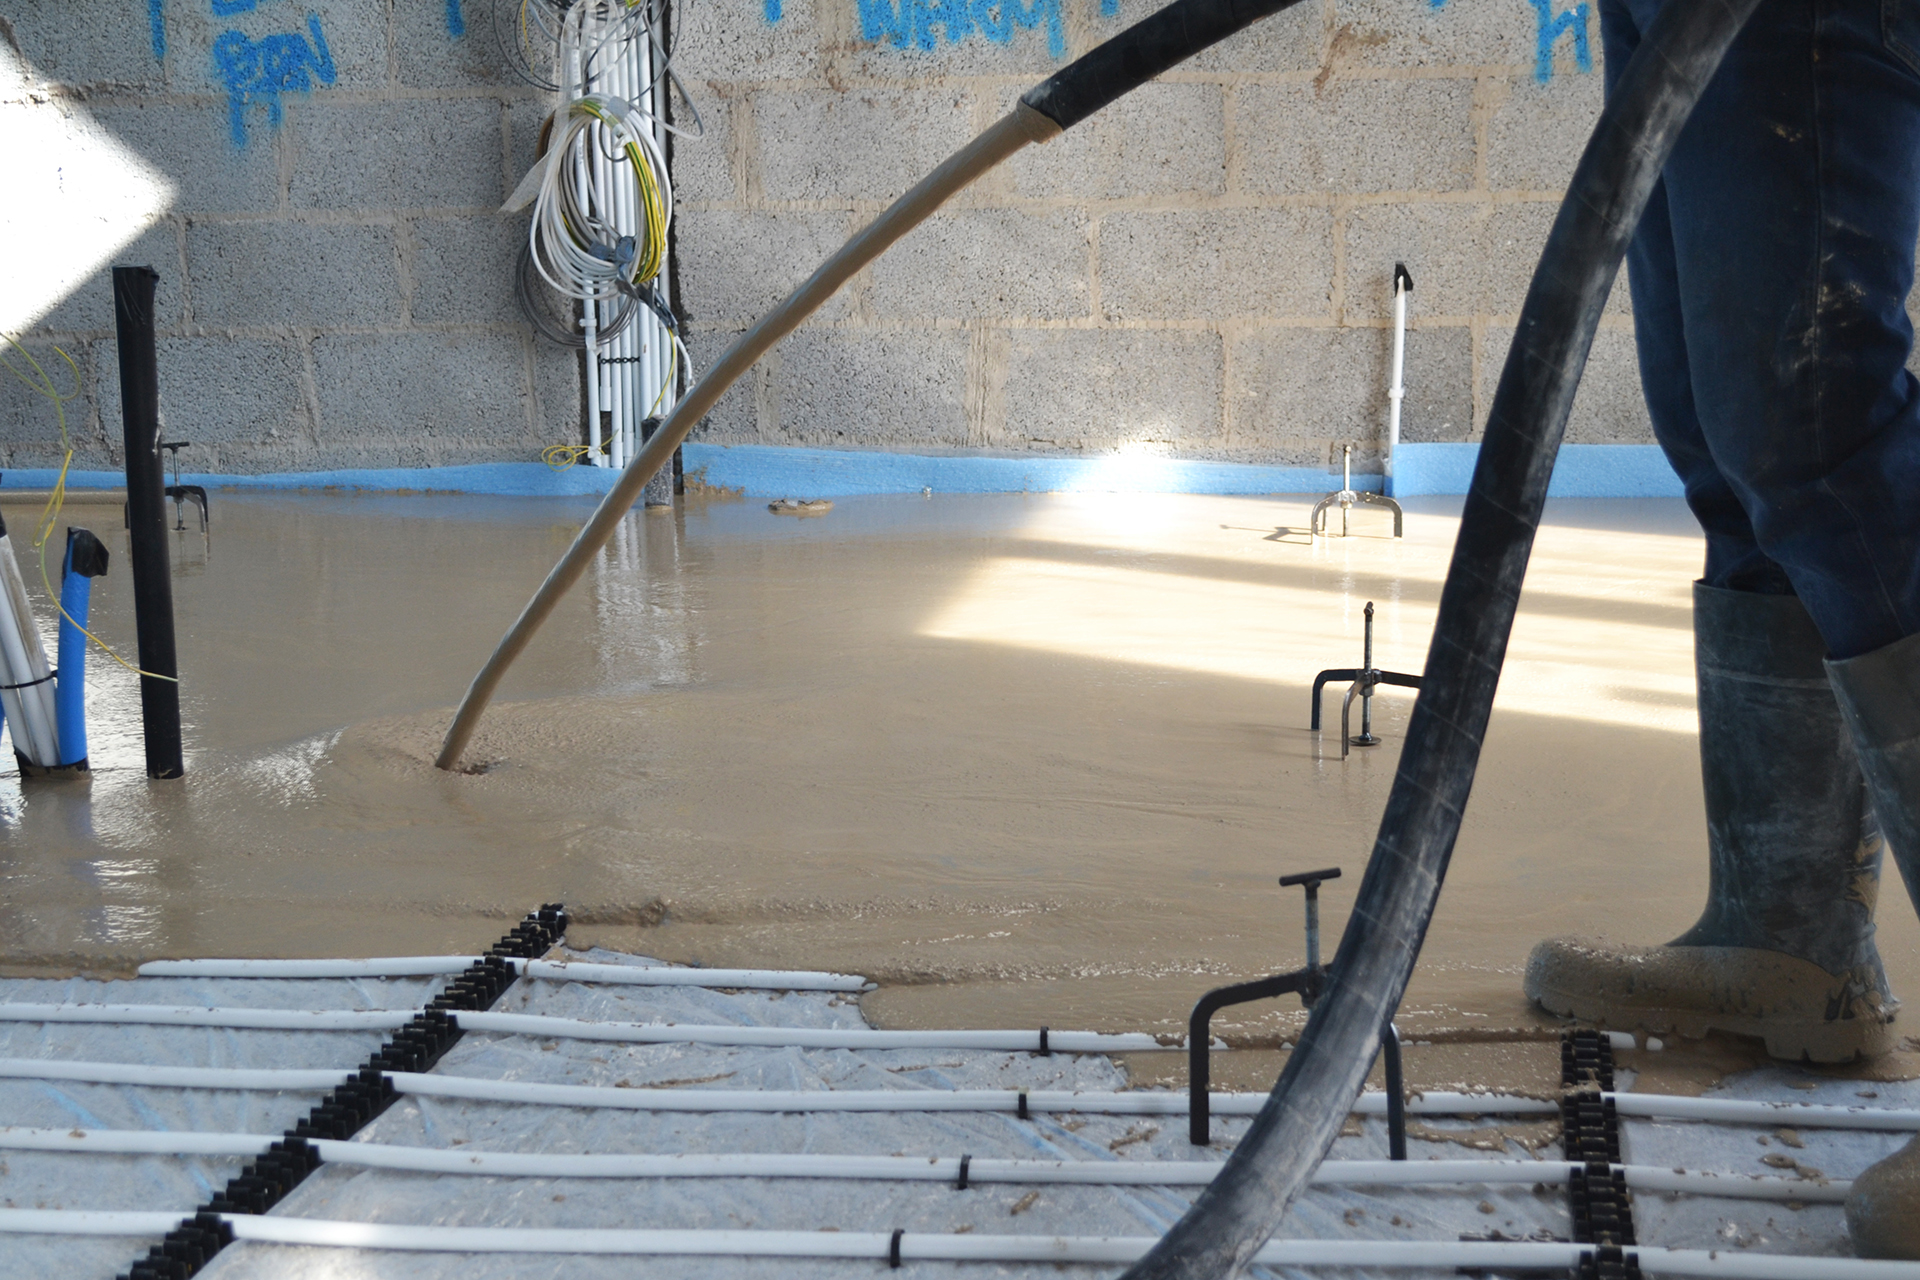 ADM Floor Screed Worker Pouring Liquid Screed